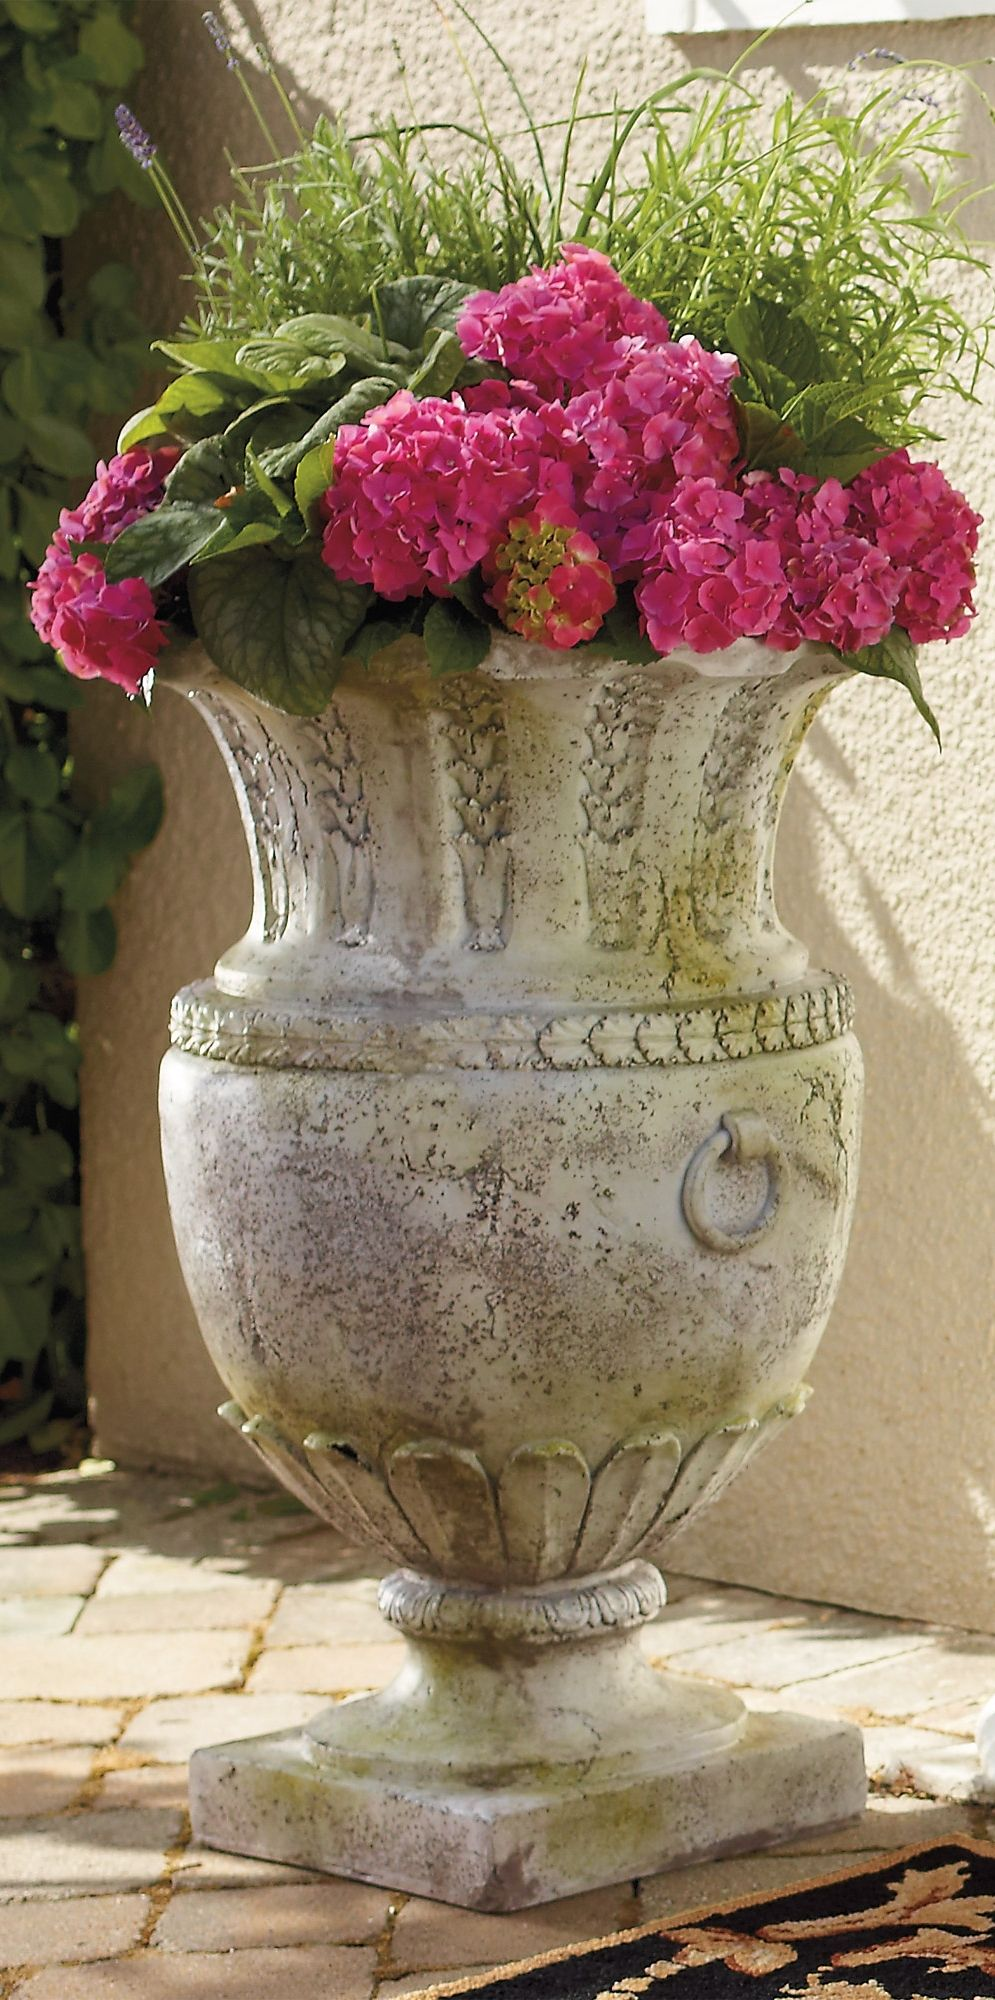 or for cast urns antique reclaimed garden and ideal outdoor gardens patios post news stone planters pots planter vintage